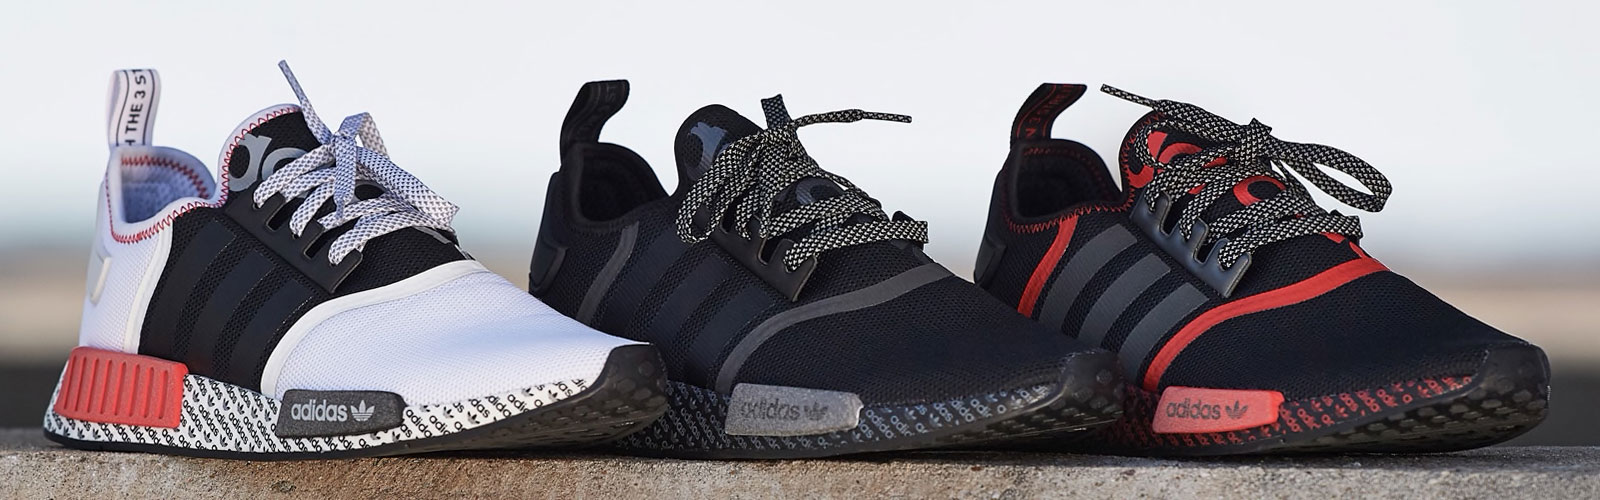 adidas NMD R1 Transmission 2.0 Sneakers   SneakerFits.com